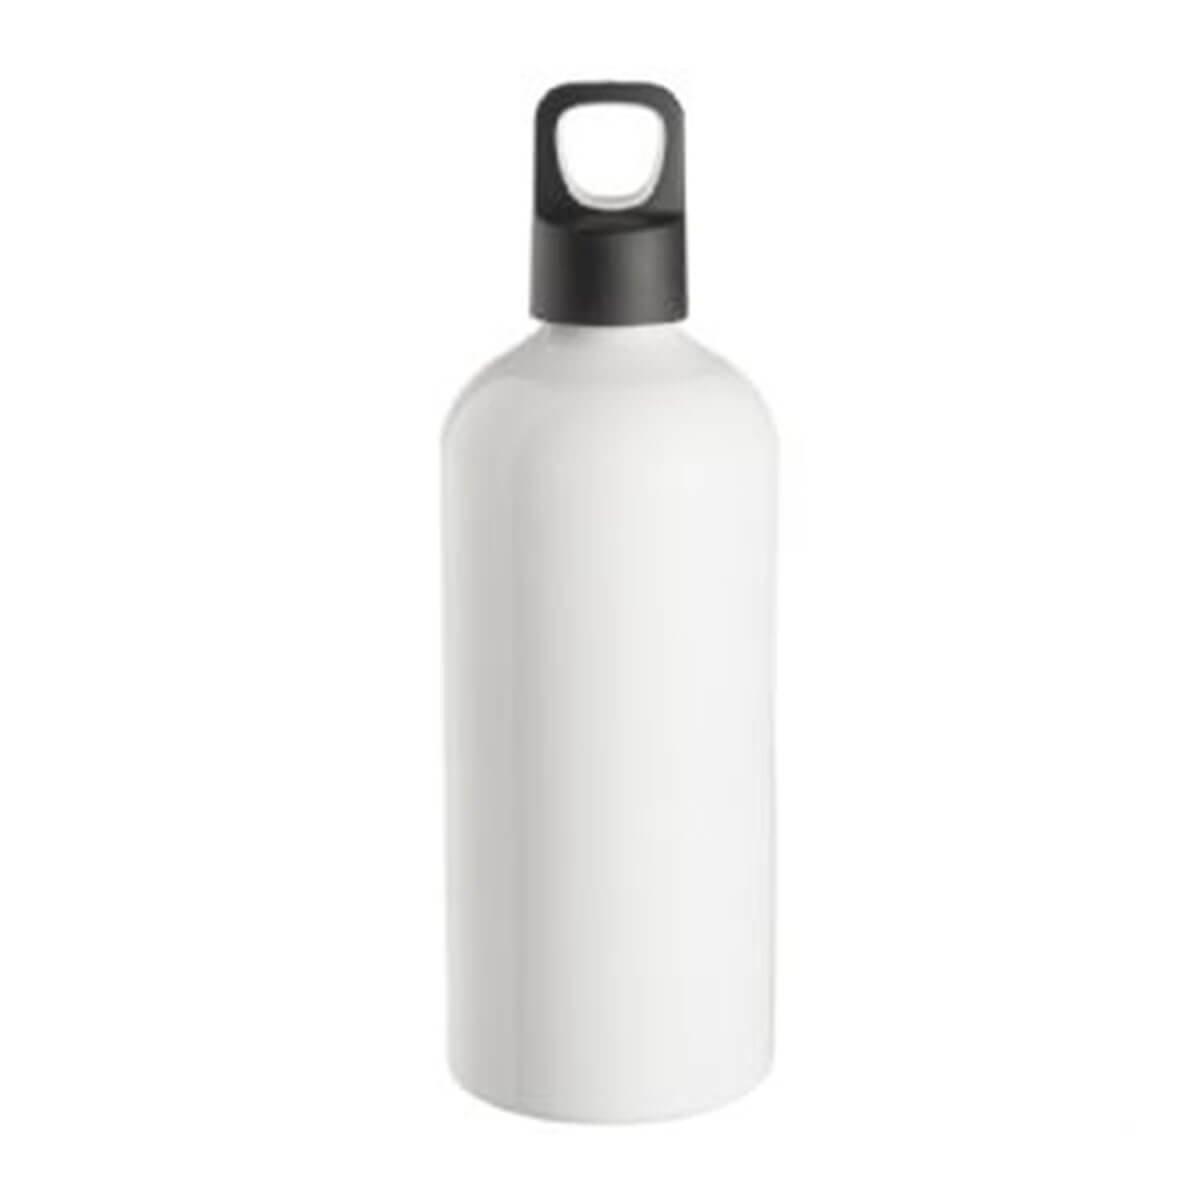 Aluminium Drink Bottle – White-White.